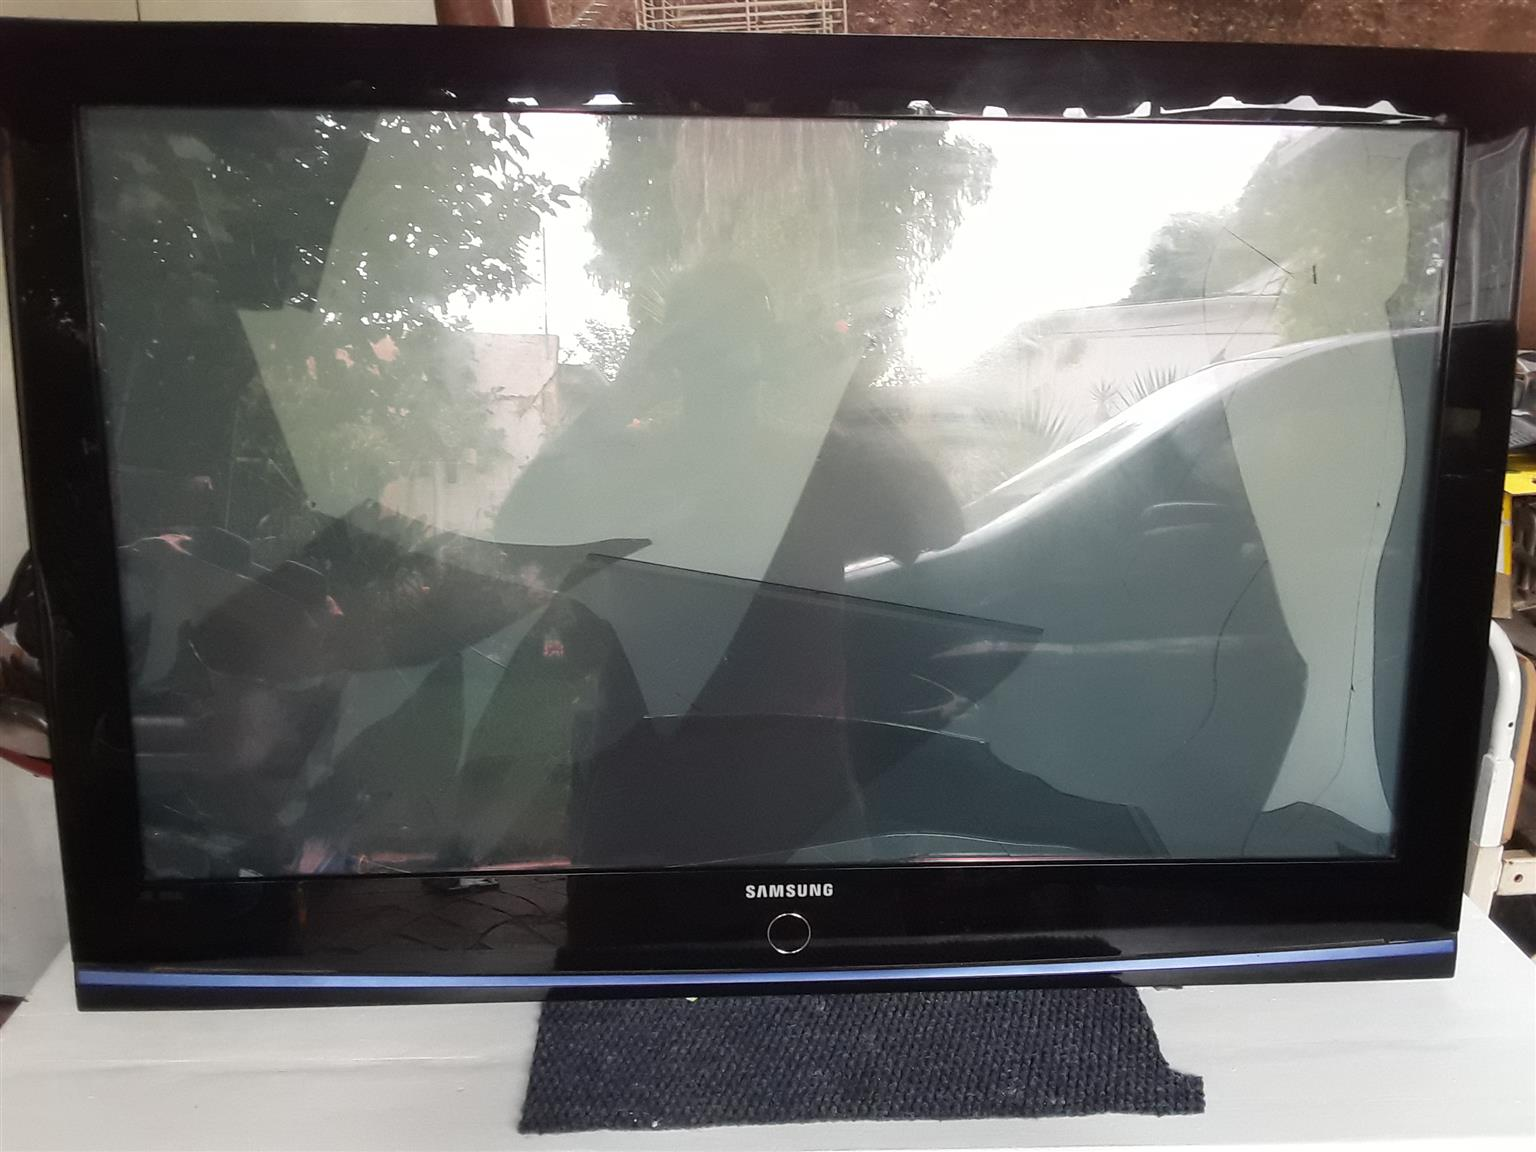 Samsung Plasma TV PS42A410C1. Screen is broken. Selling as is or for spares.